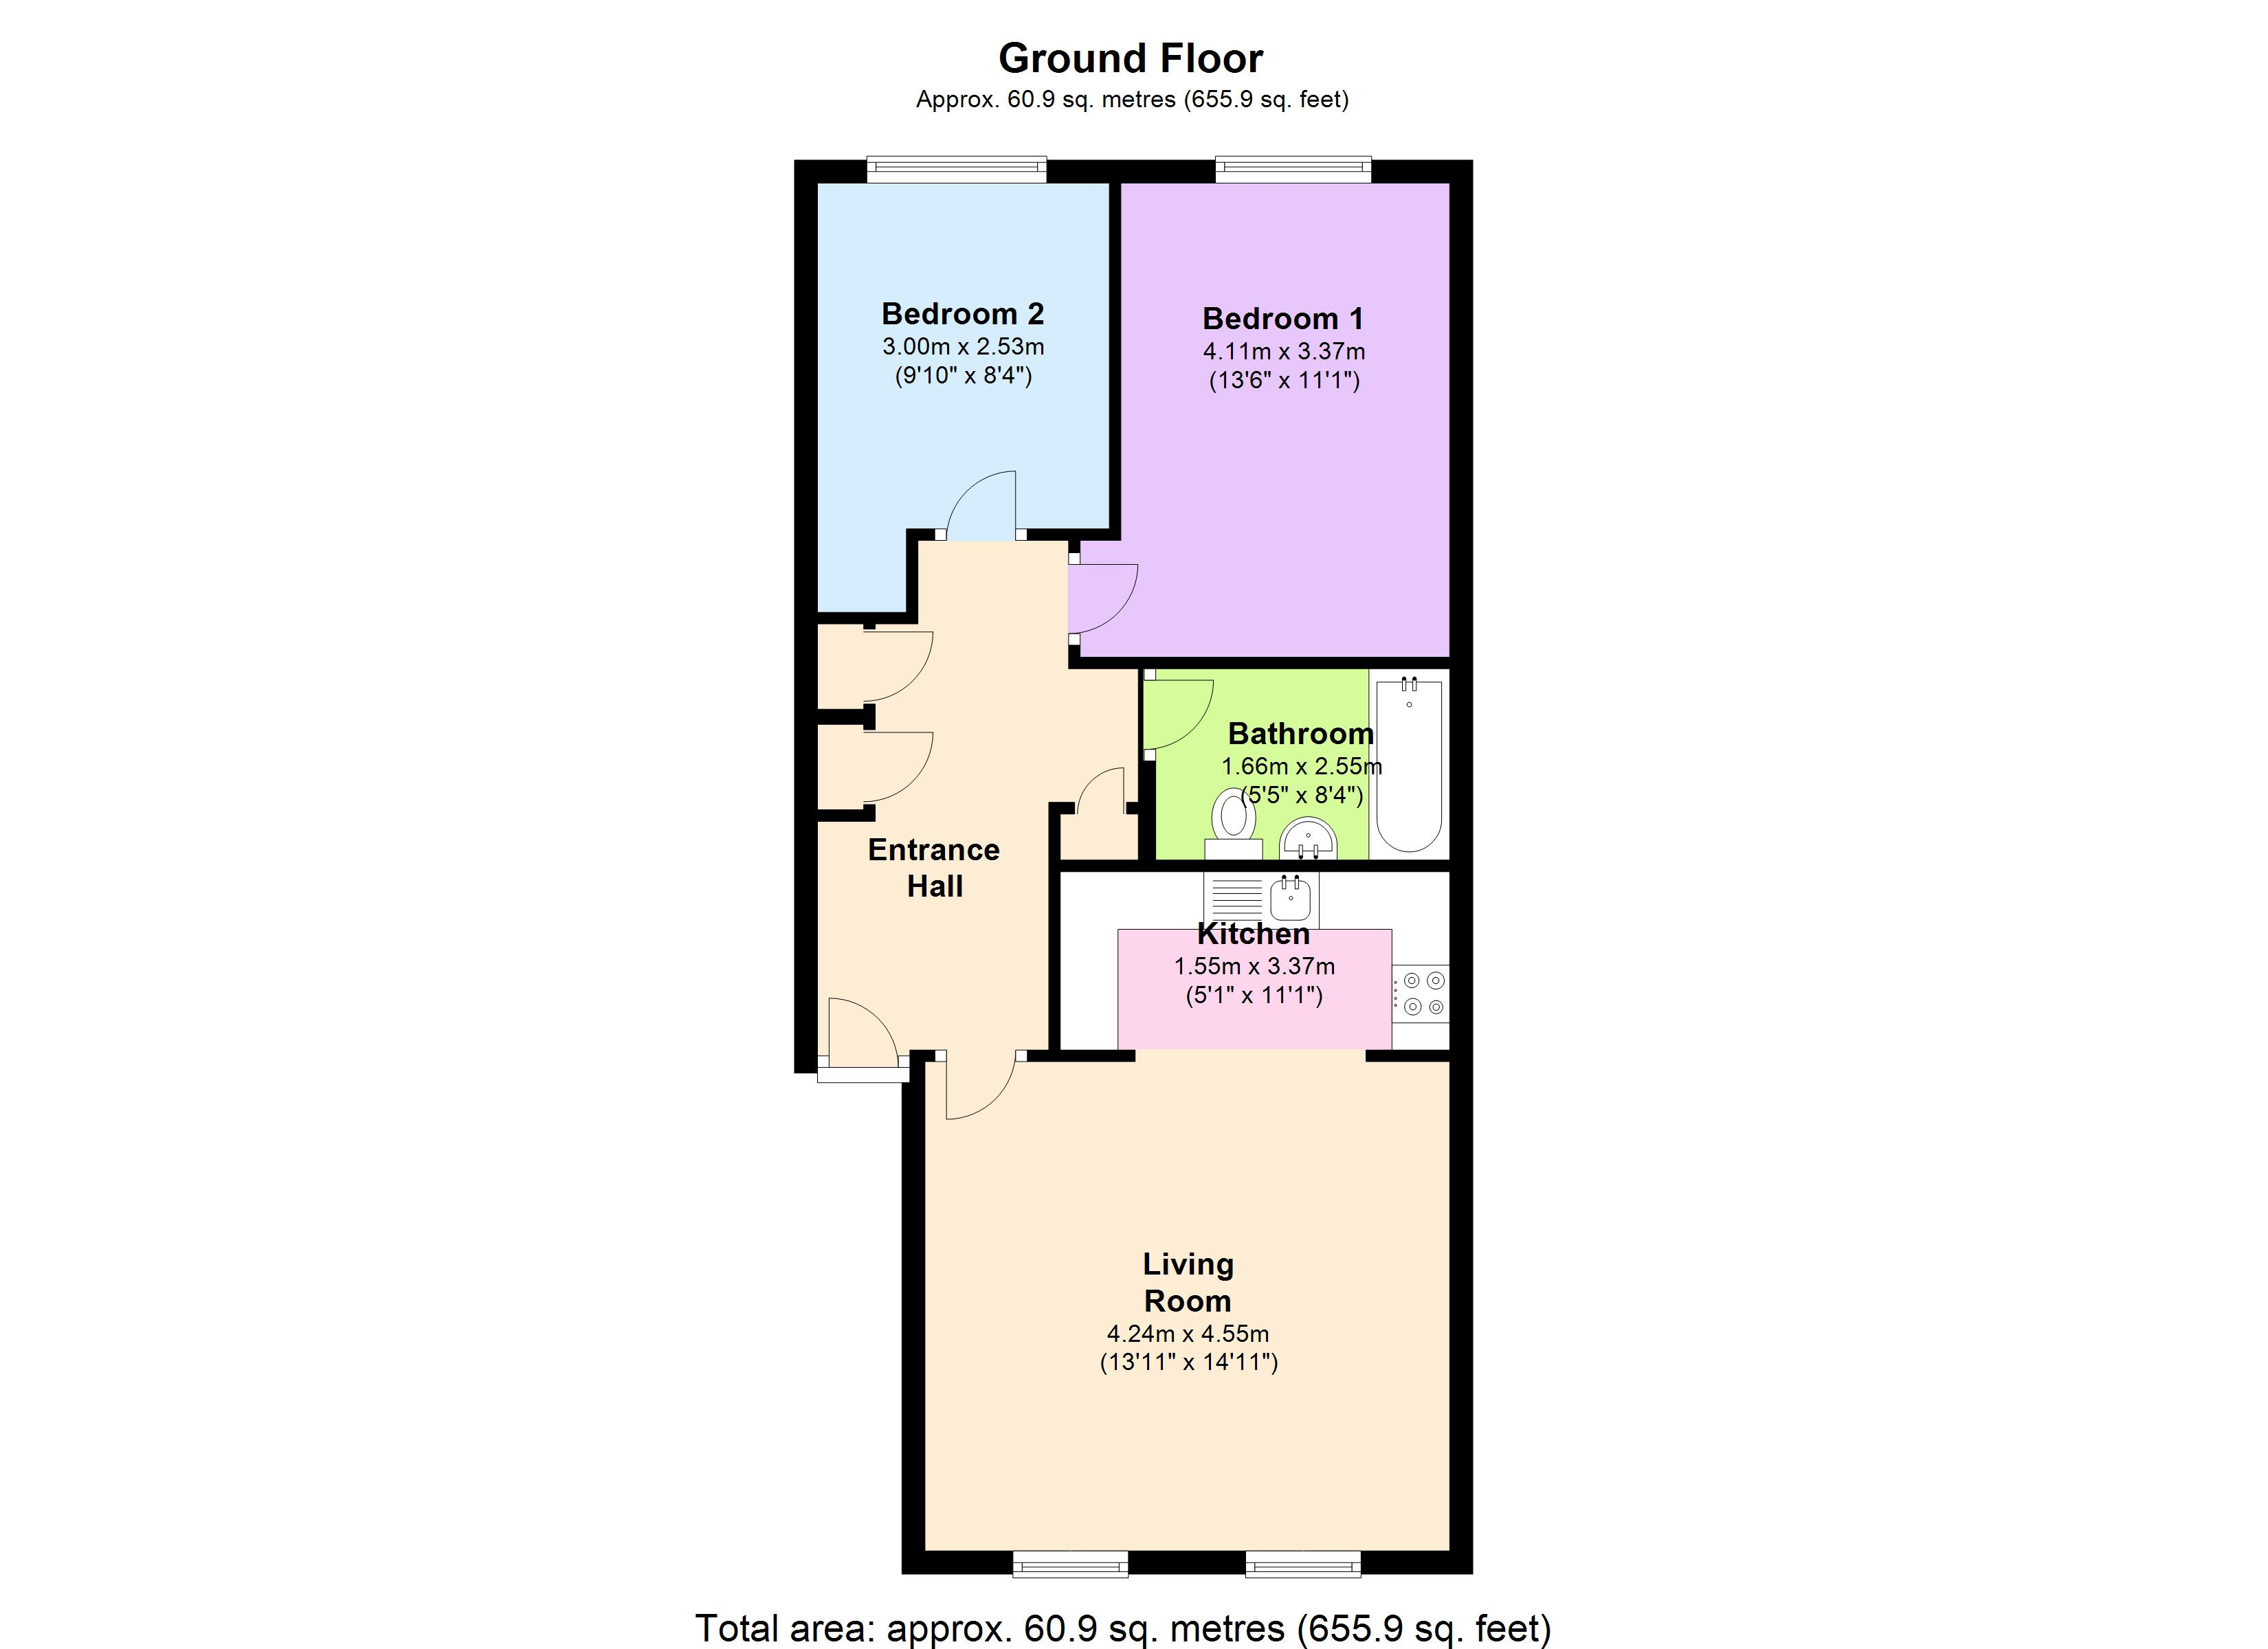 Hindhead Property Limited